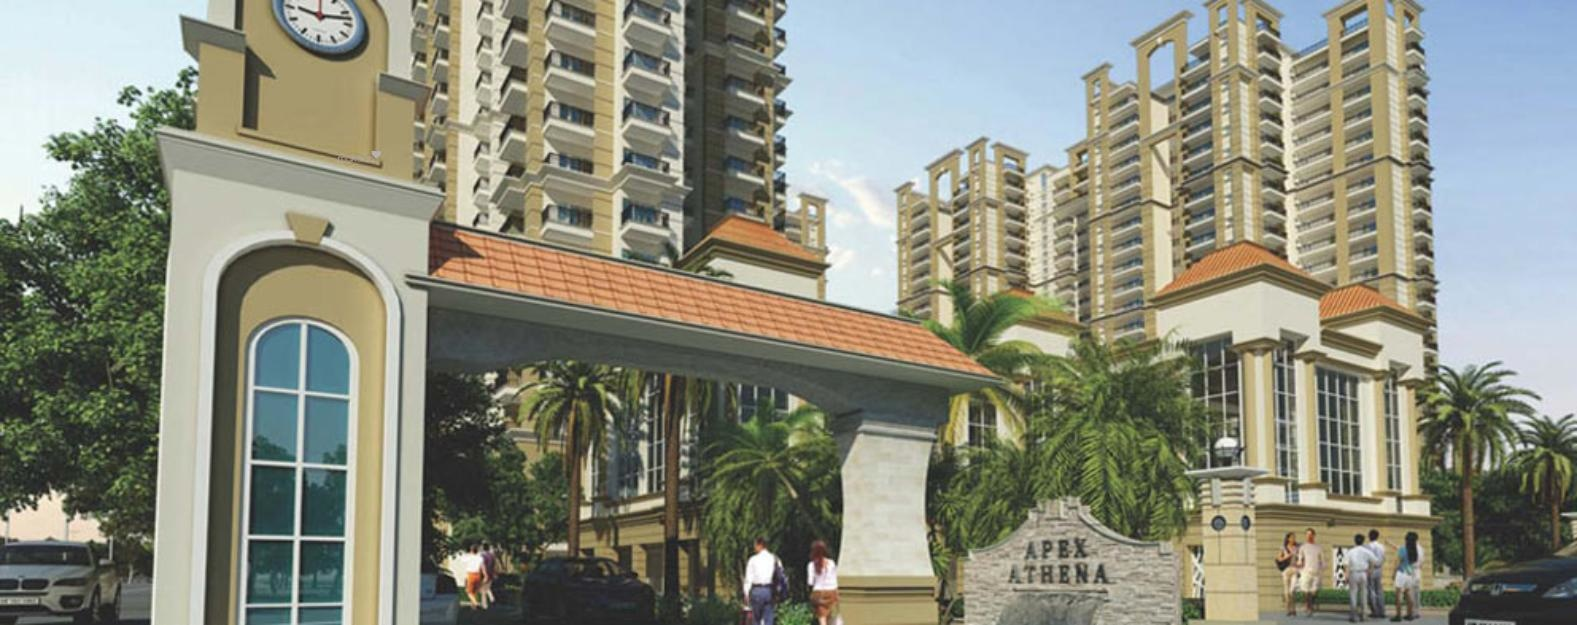 1732 sq ft 3BHK 3BHK+3T (1,732 sq ft) + Study Room Property By Ajmani Estates In Athena, Sector 75